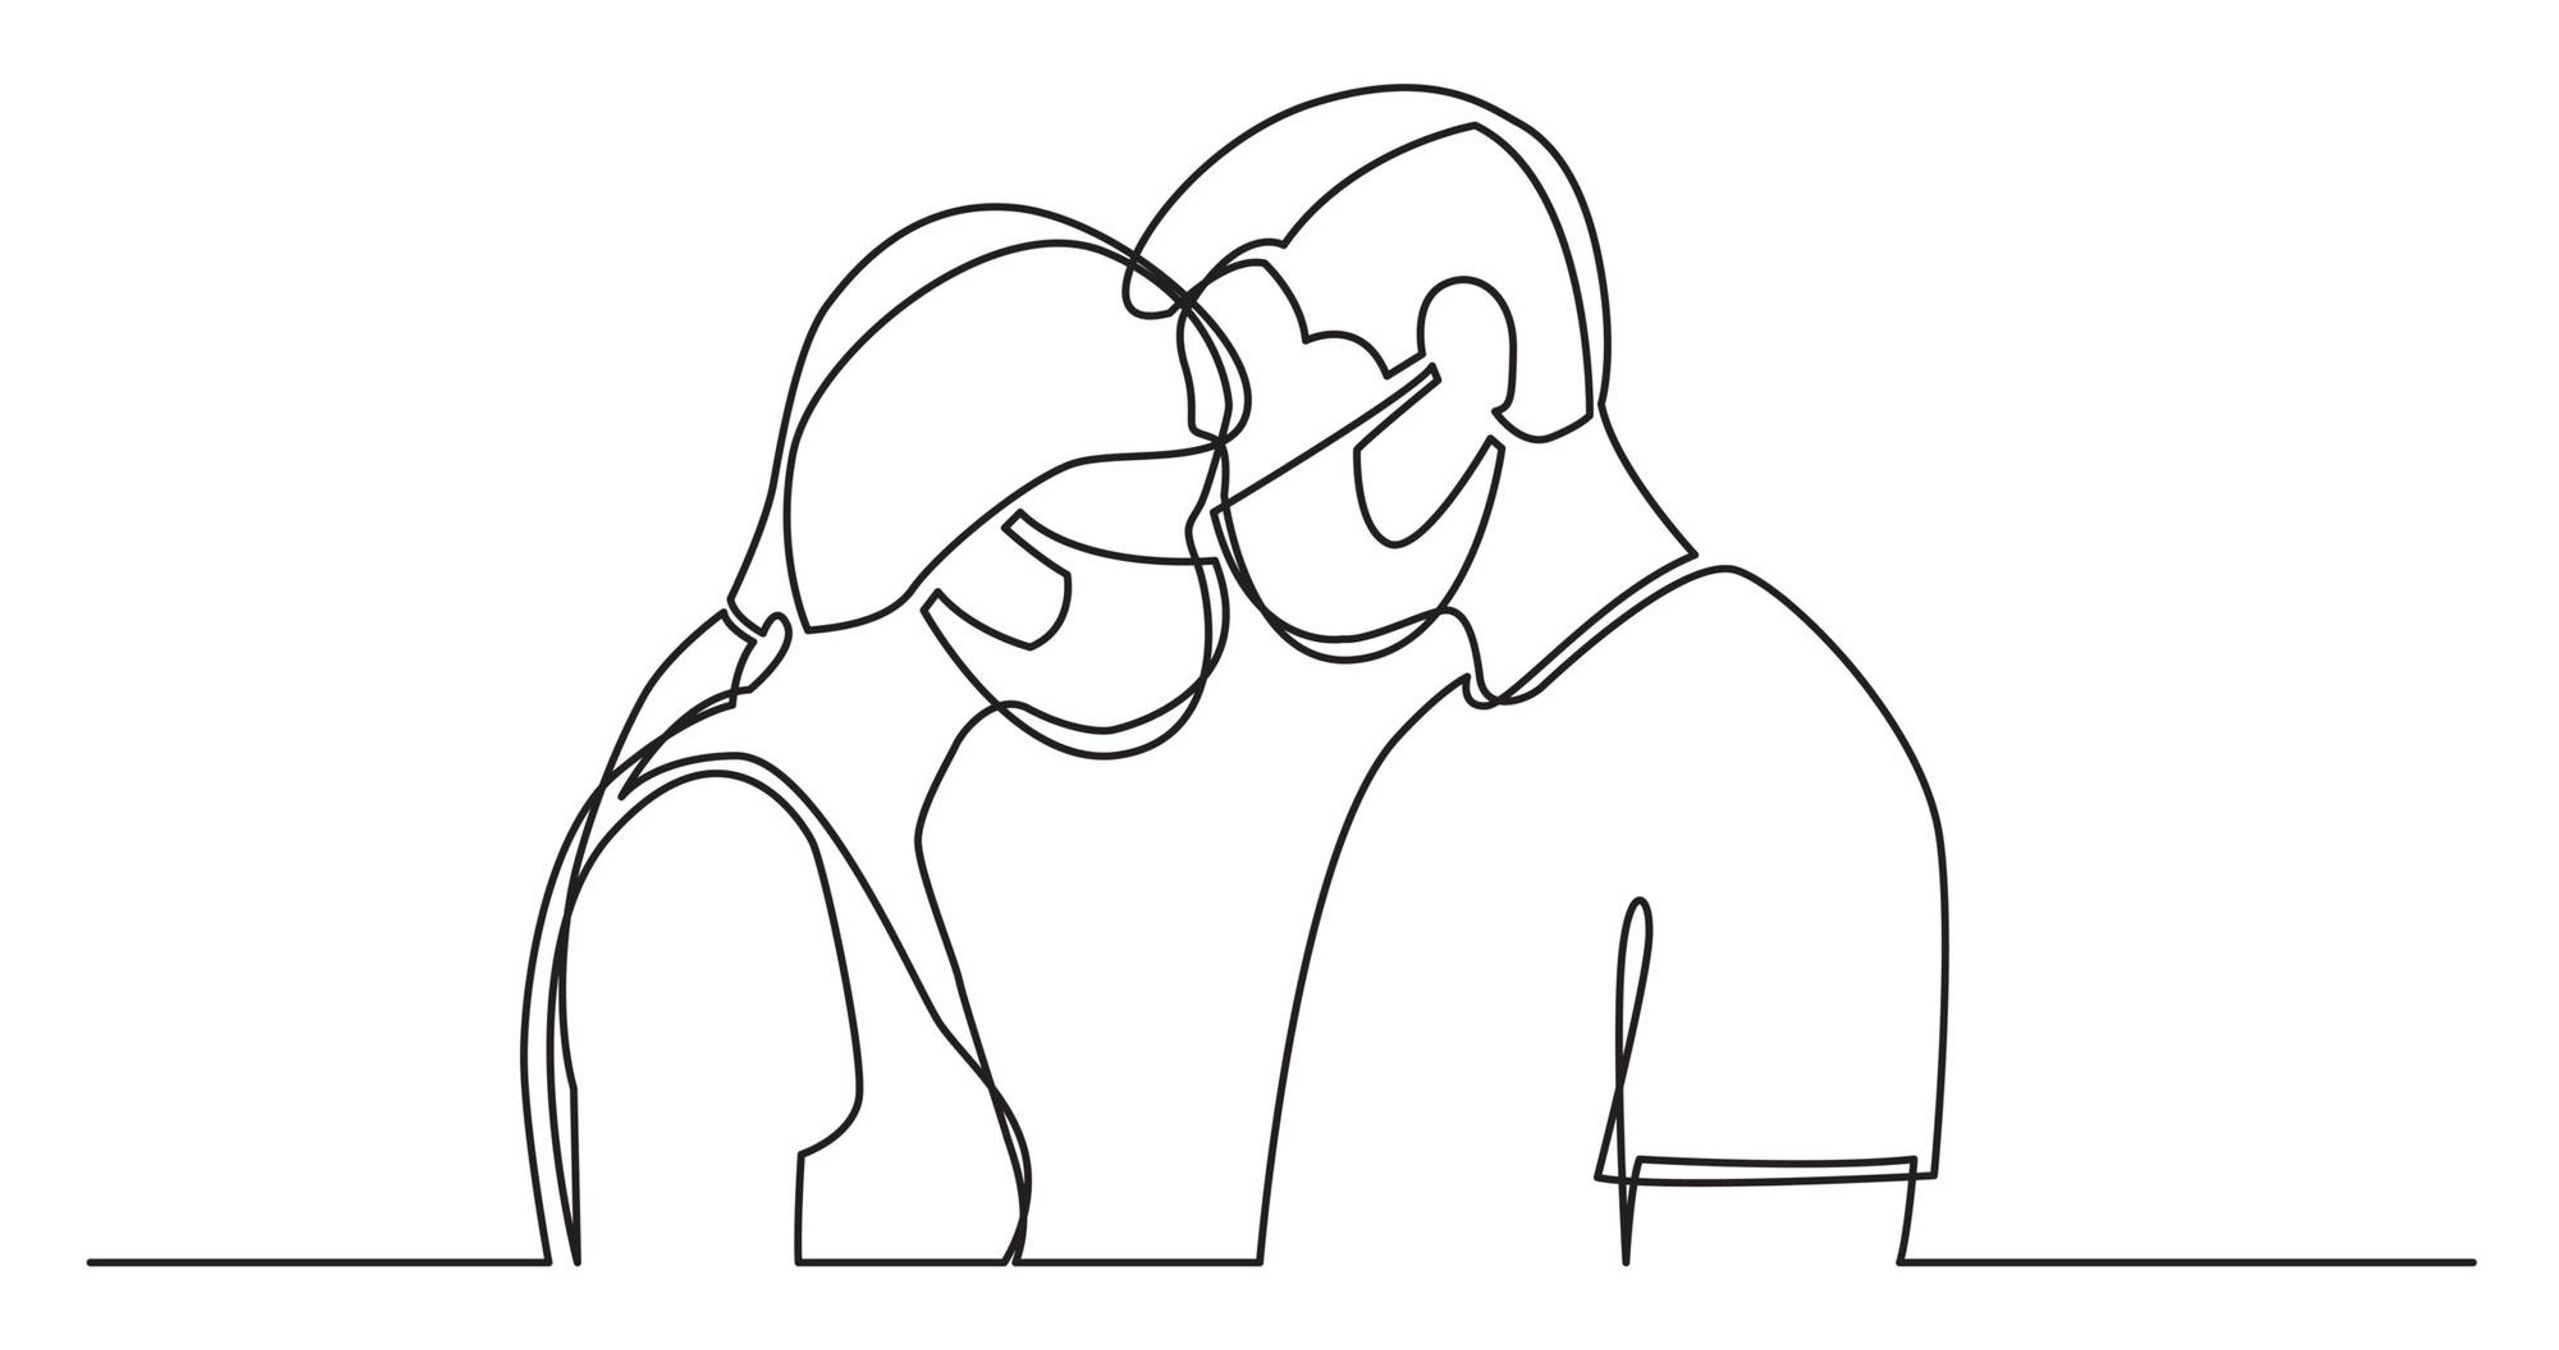 Line drawing illustration of a couple wearing masks and touching their foreheads together, non-monogamous, Rewire